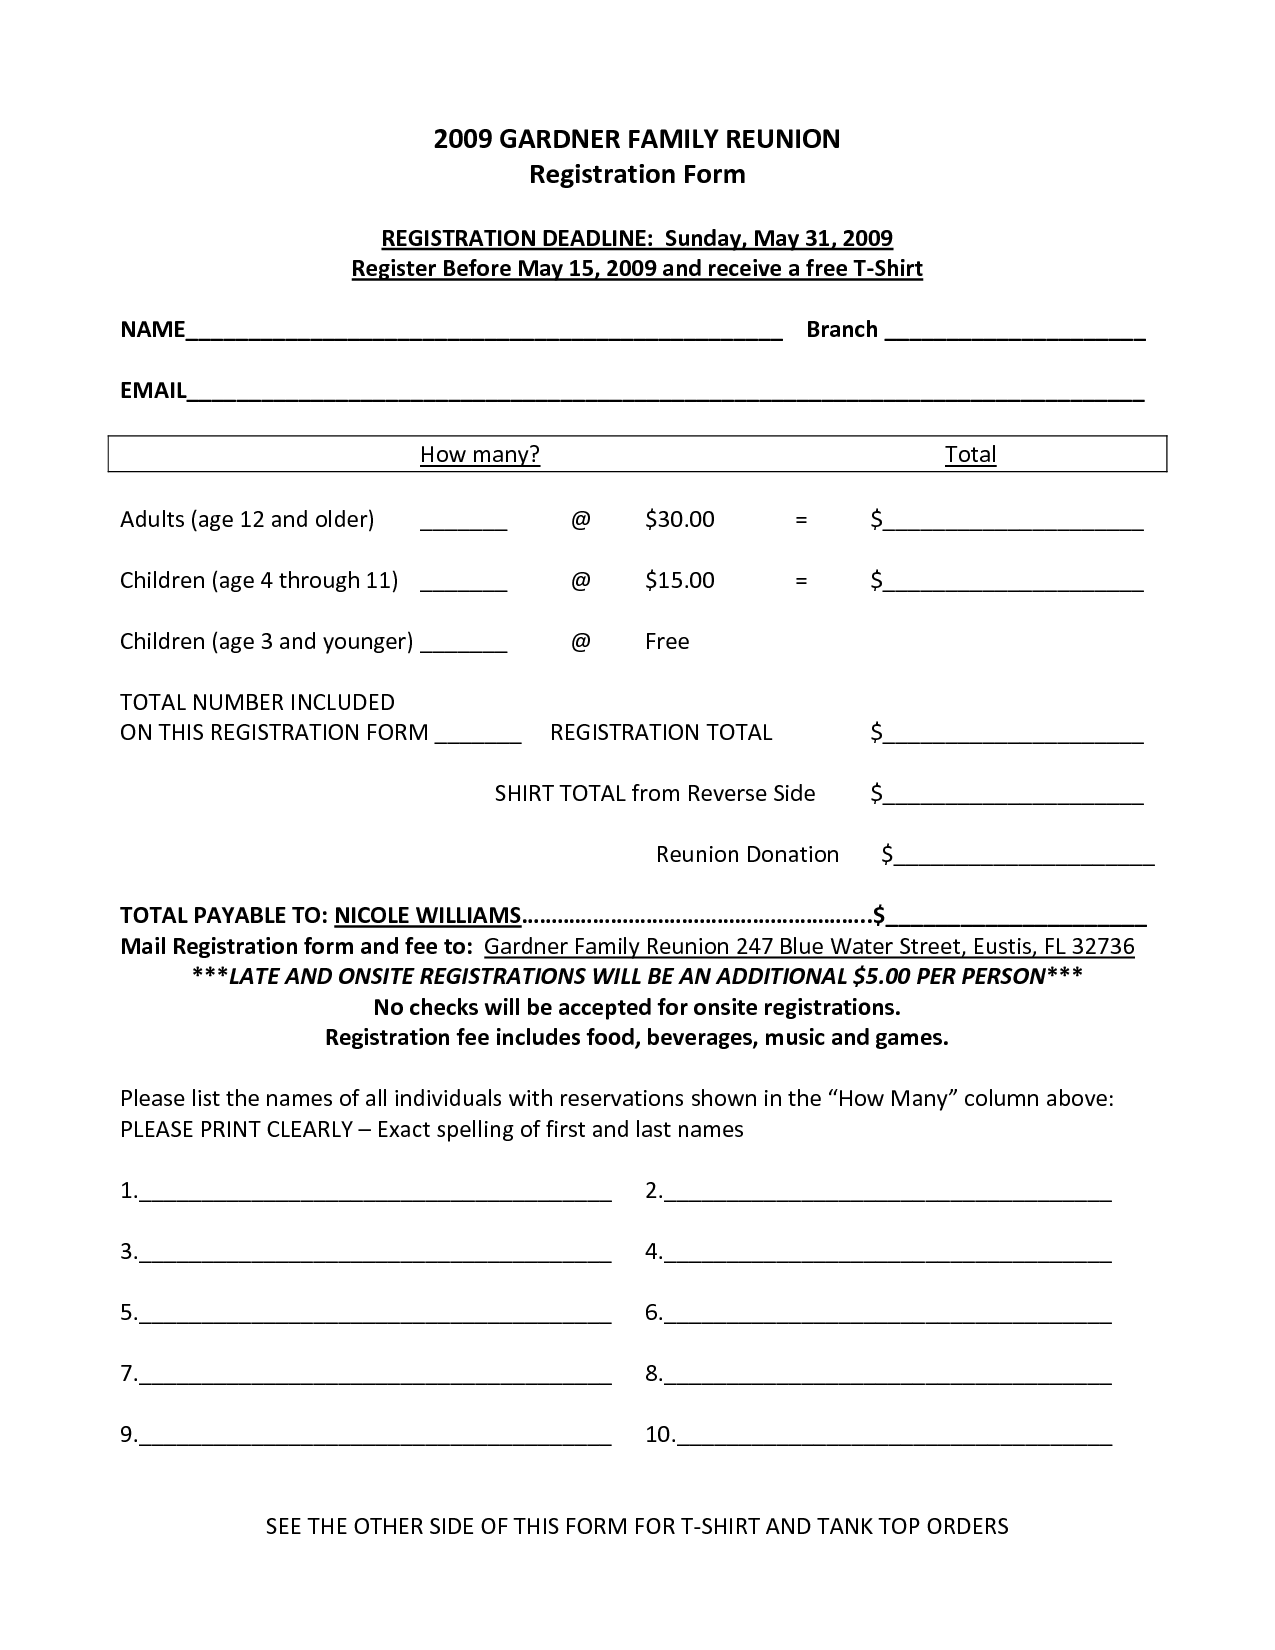 family reunion registration form template 10 questions to